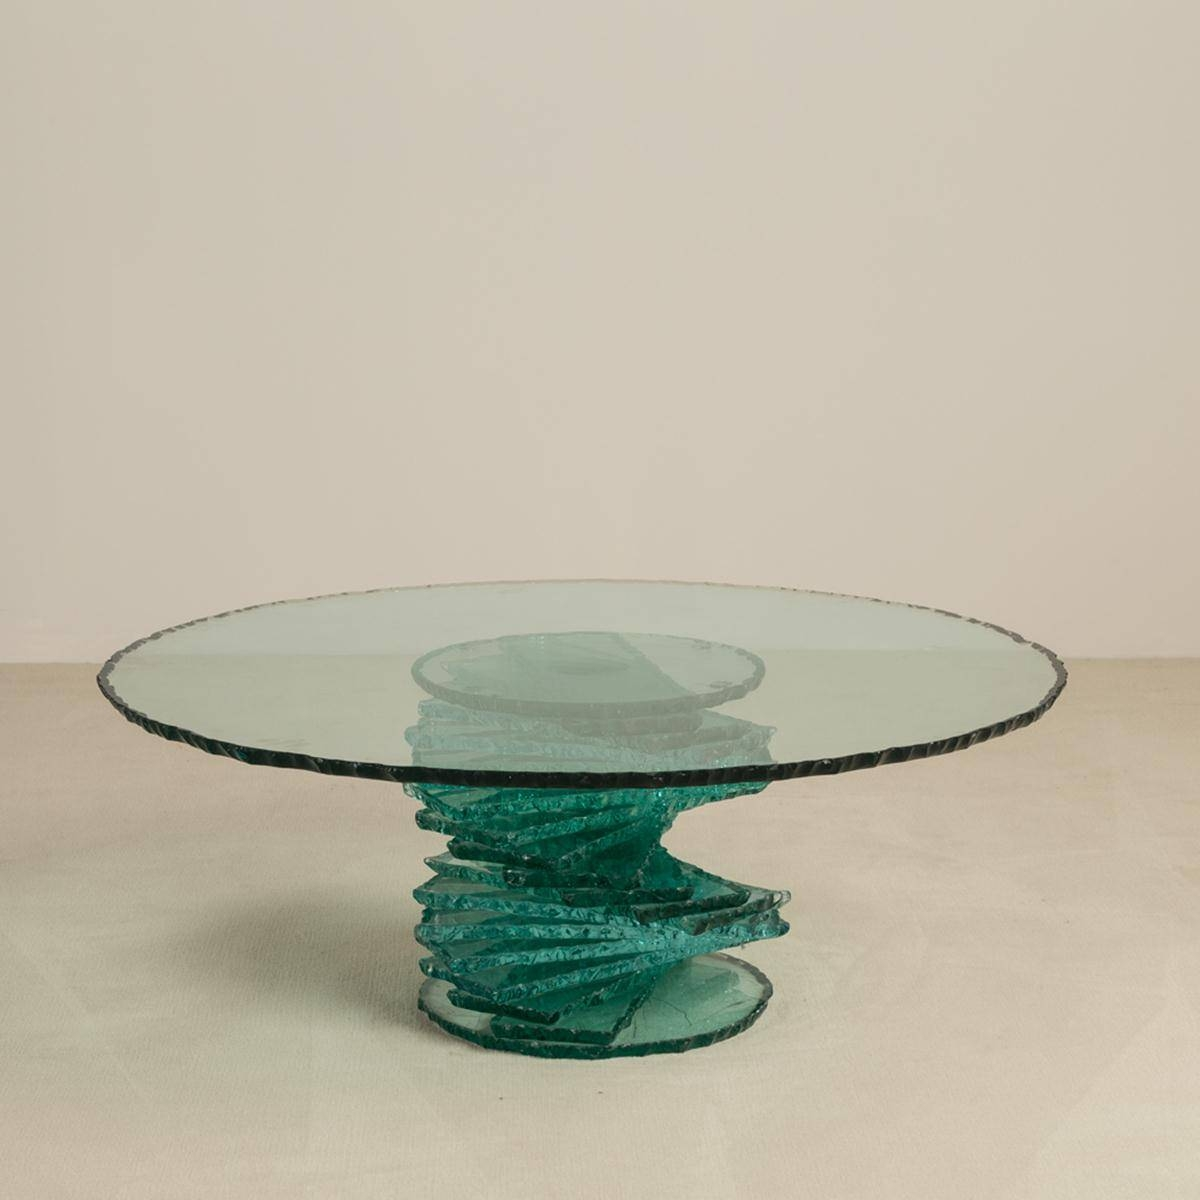 A Late 20Th Century Spiral Pedestal Based Glass Coffee Table throughout Spiral Glass Coffee Table (Image 2 of 15)